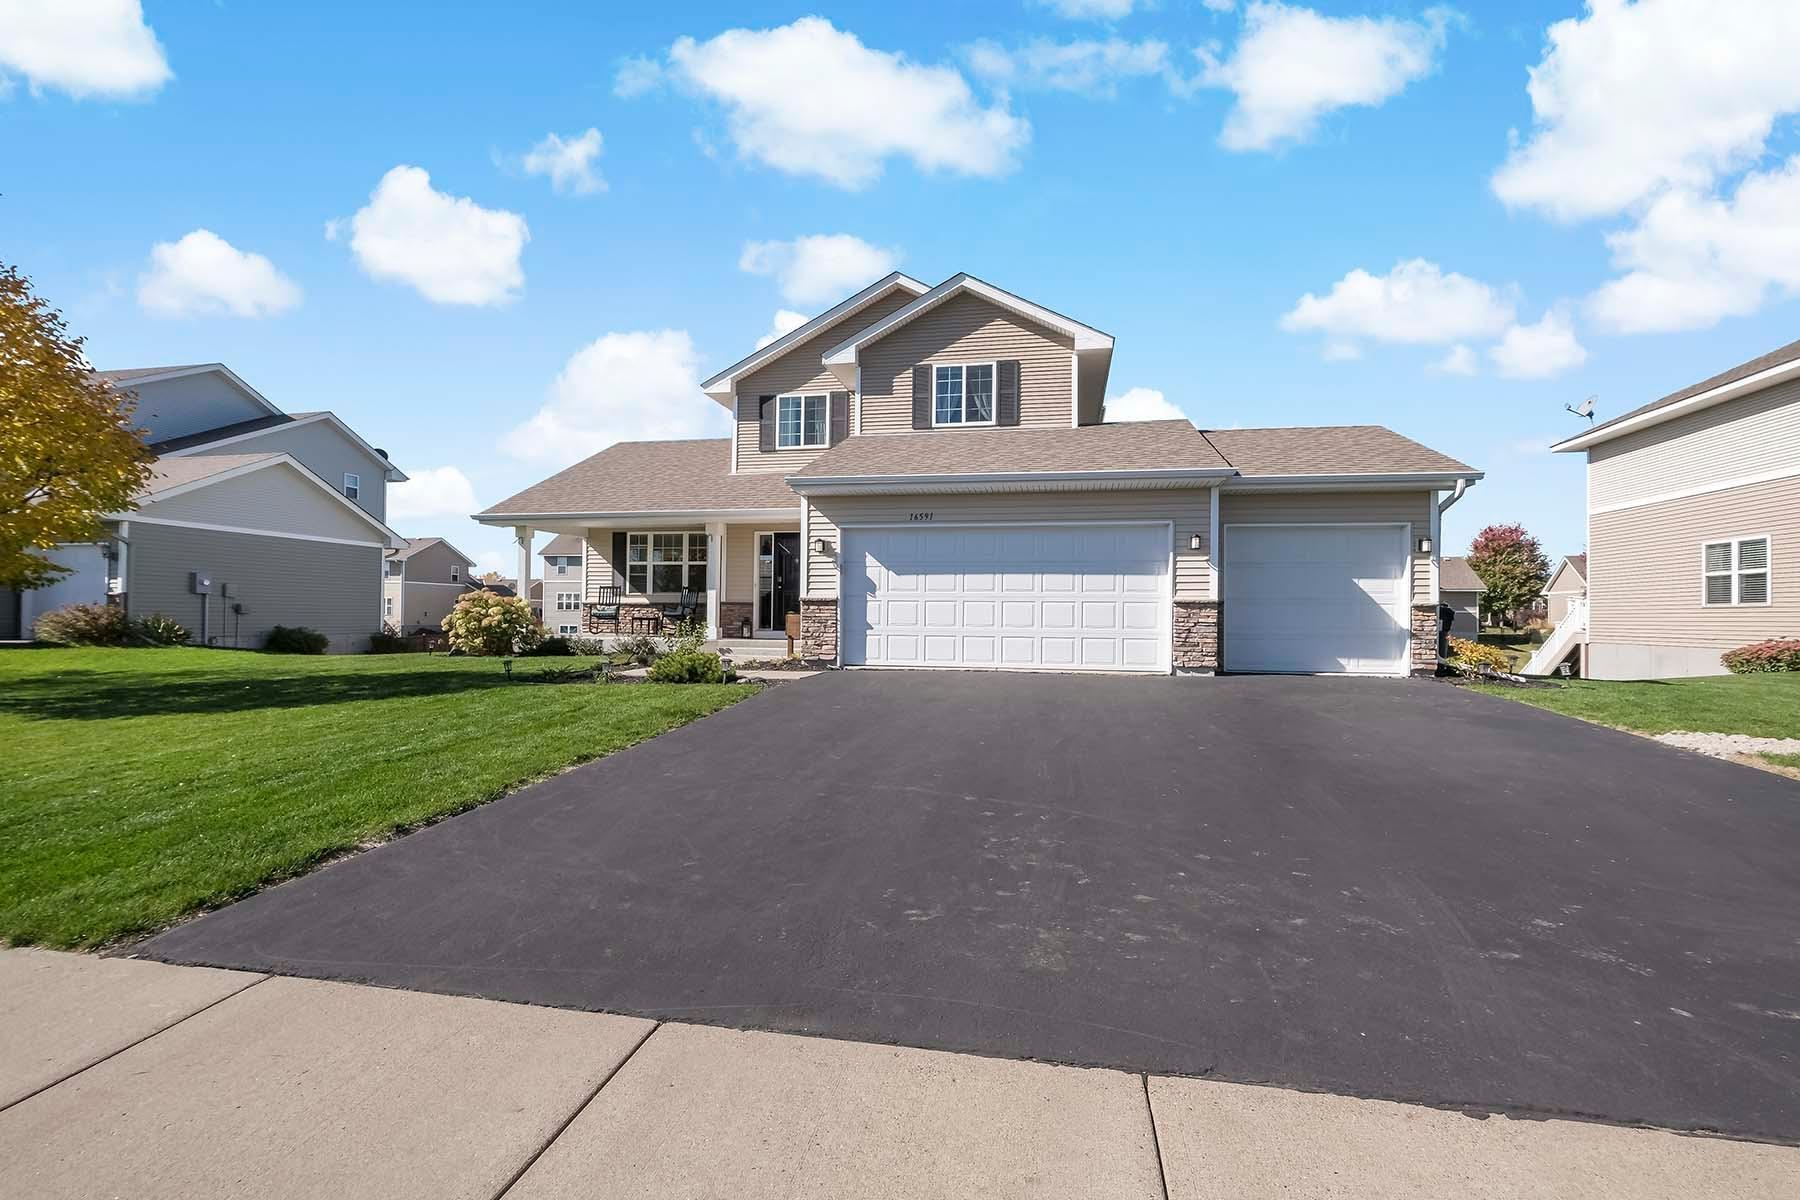 Photo of 16591 Eventide Way, Lakeville, MN 55044 (MLS # 5676342)